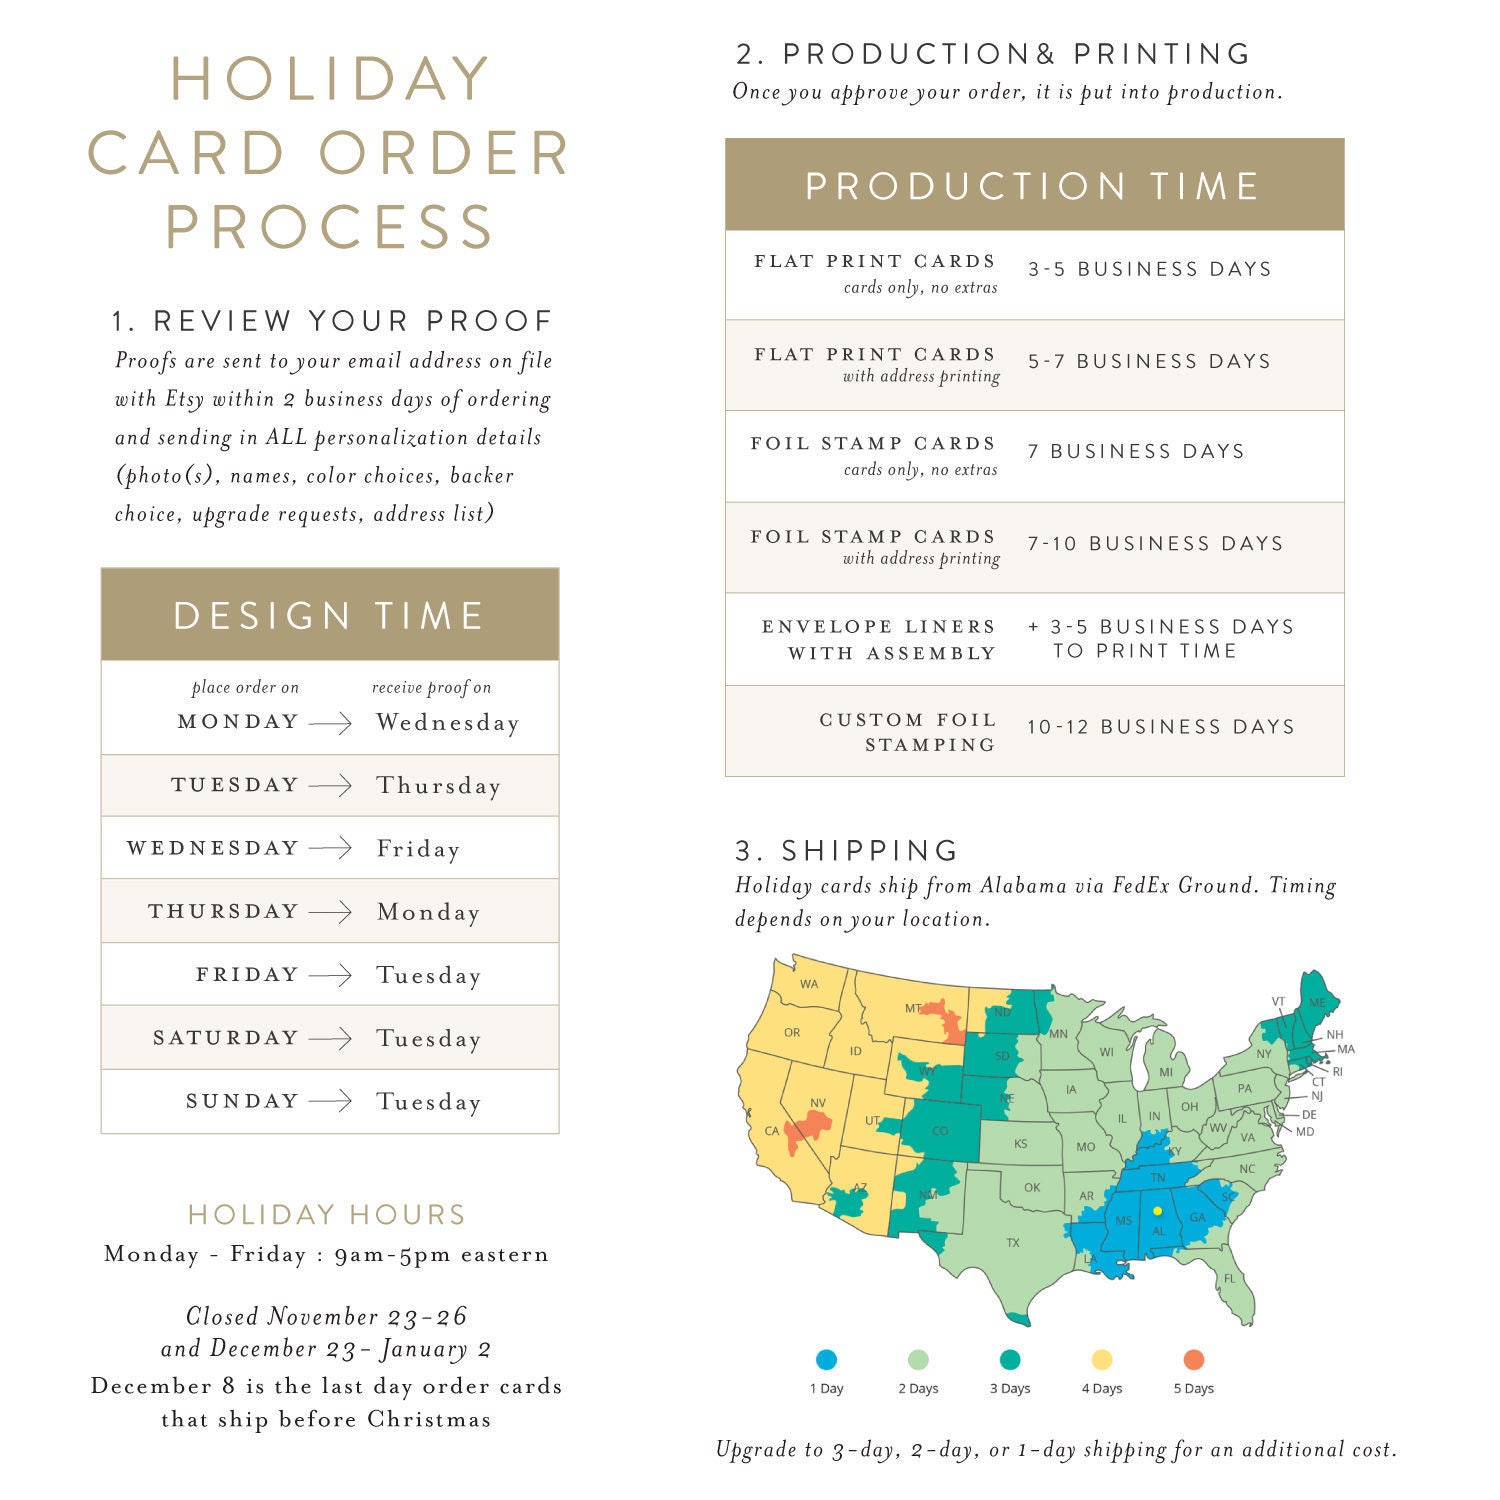 Email Holiday Cards For Business wedding invitation images wedding ...